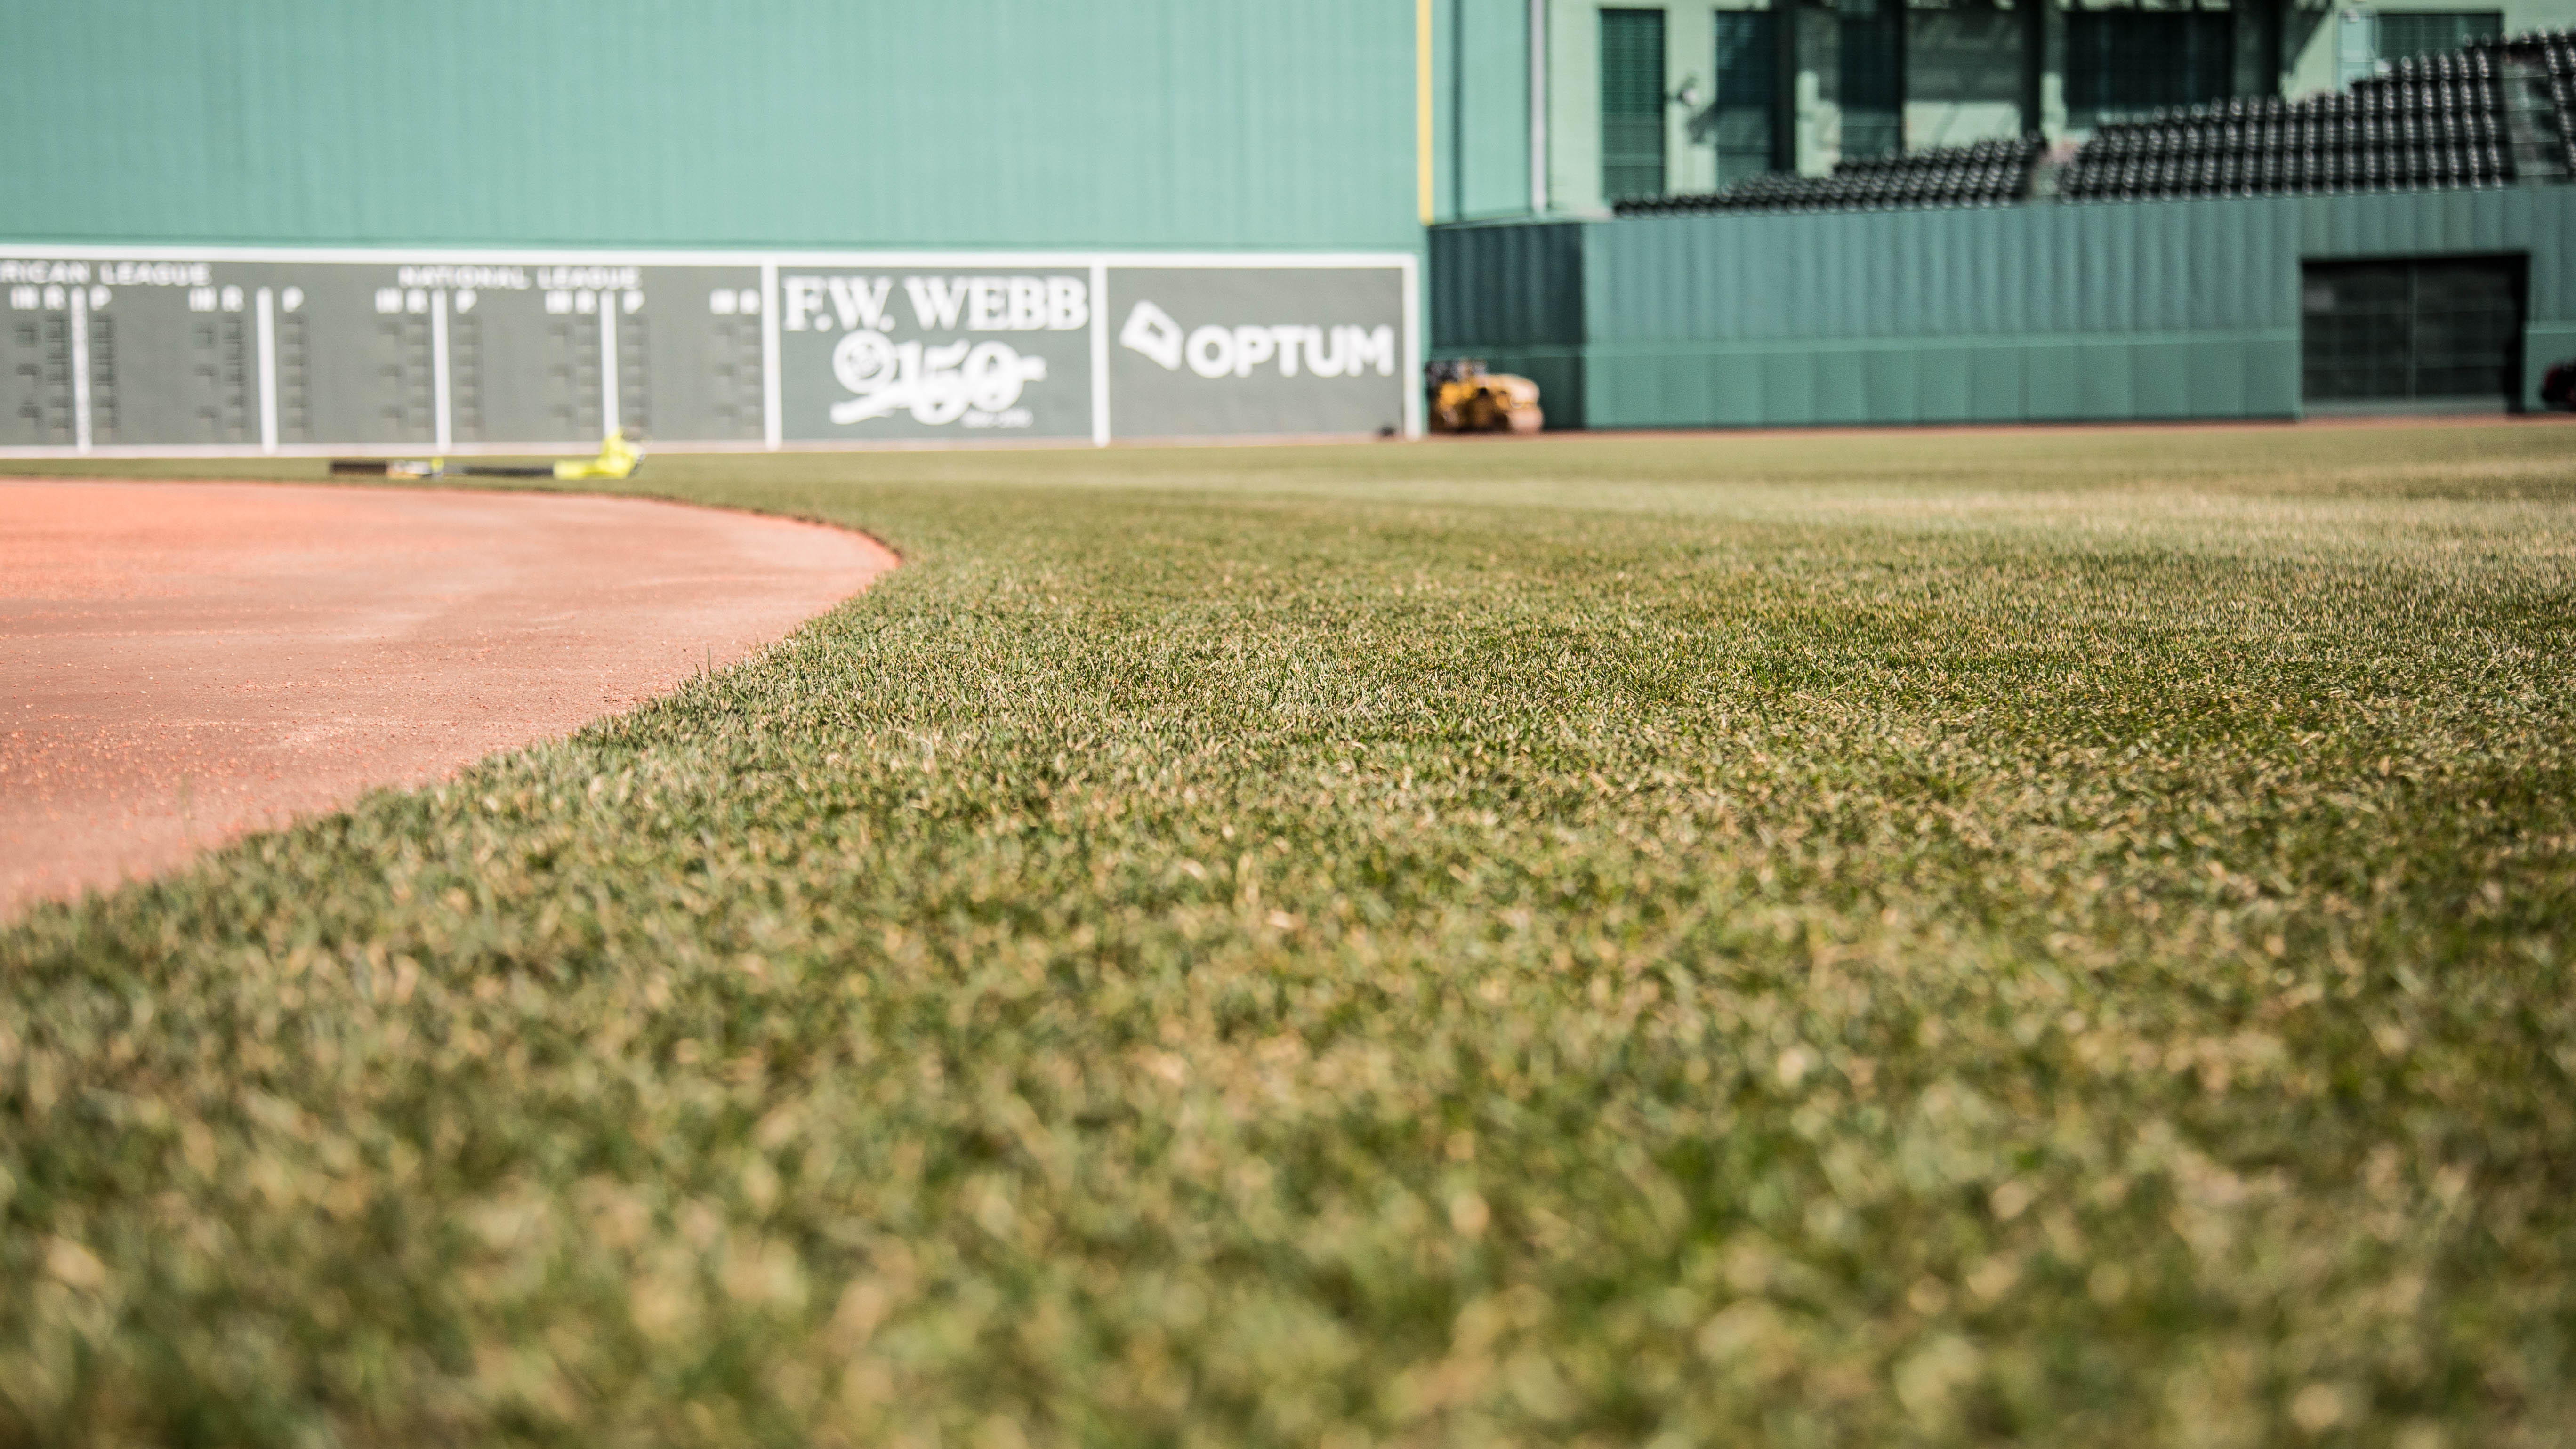 A brand-new Fenway field was beginning to green up on the last day of March.